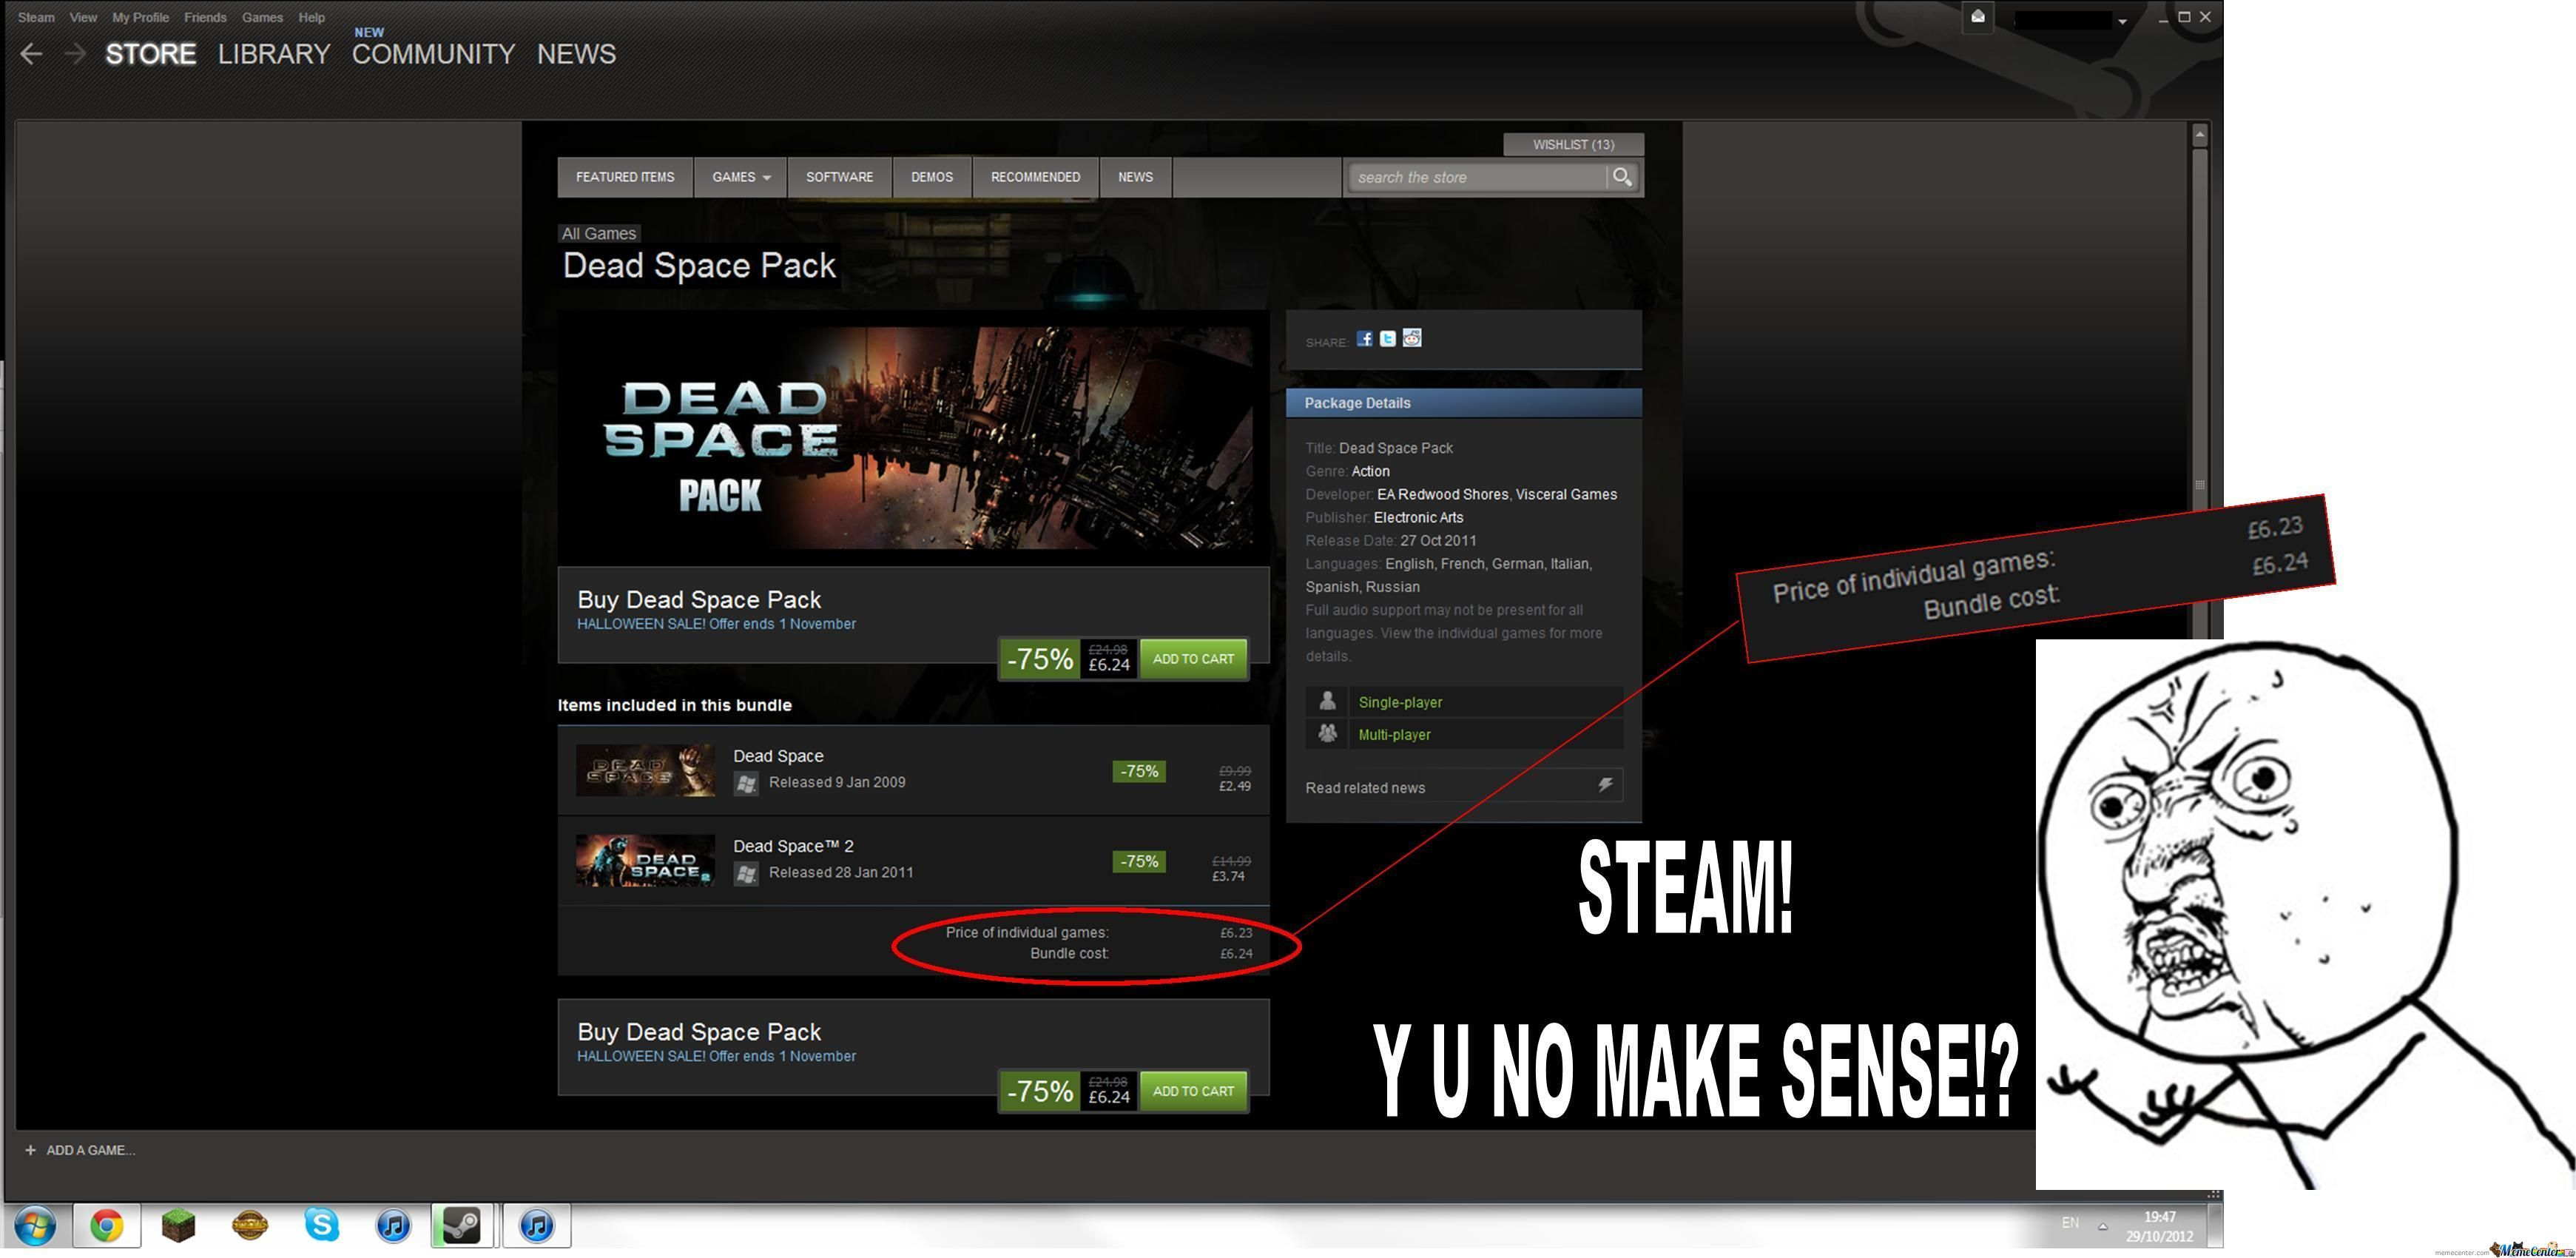 c78144be4446 Steam Prices Make No Sense.... Why The Hell Are You Still Reading This  Title  You Should Be Ashamed Of Yourself.